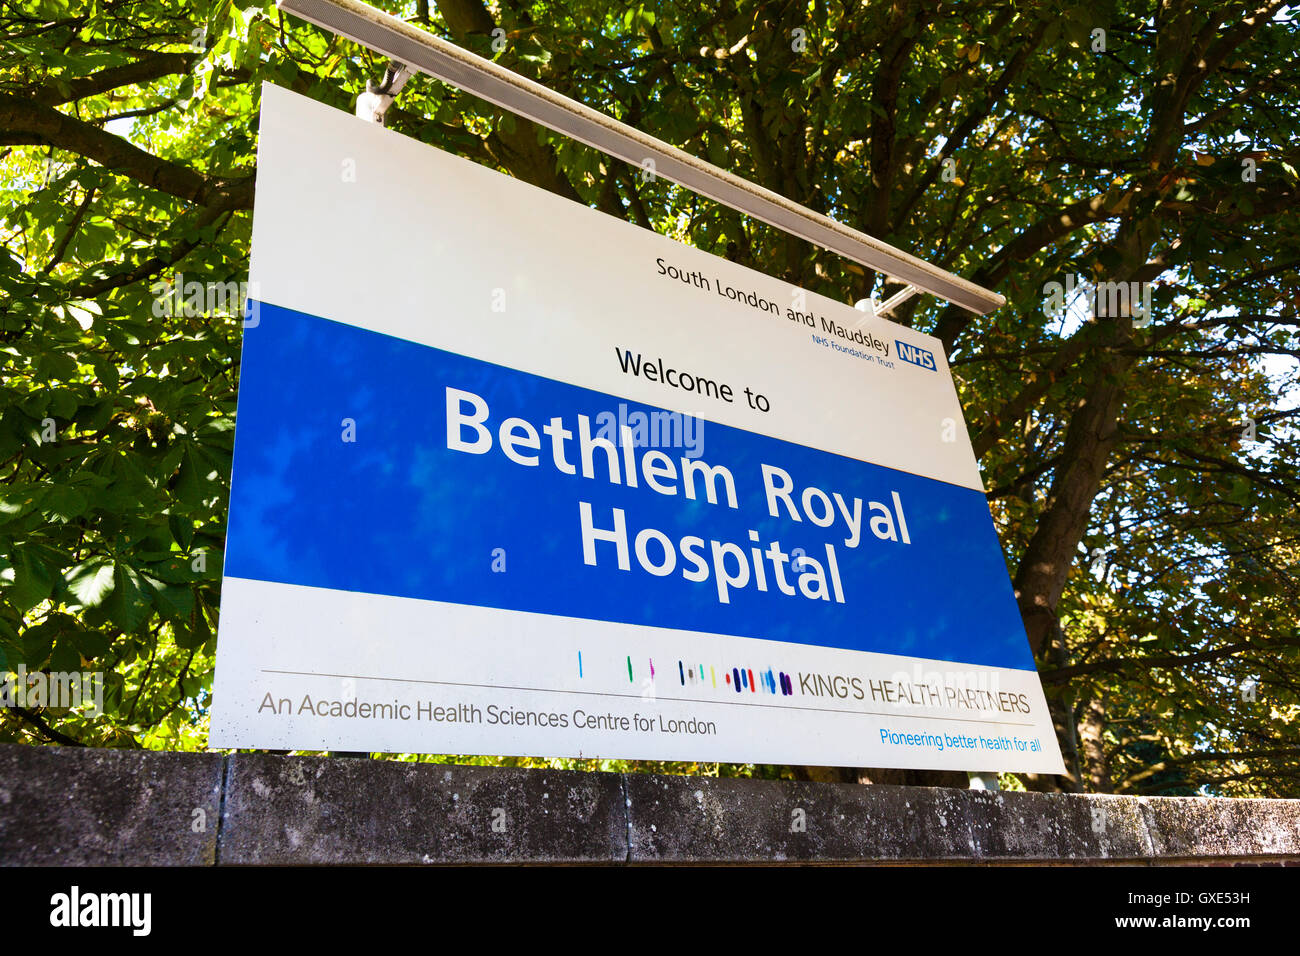 Sign, Bethlem Royal Psychiatric Hospital, London, UK. Part of the South London and Maudsley NHS Trust - Stock Image